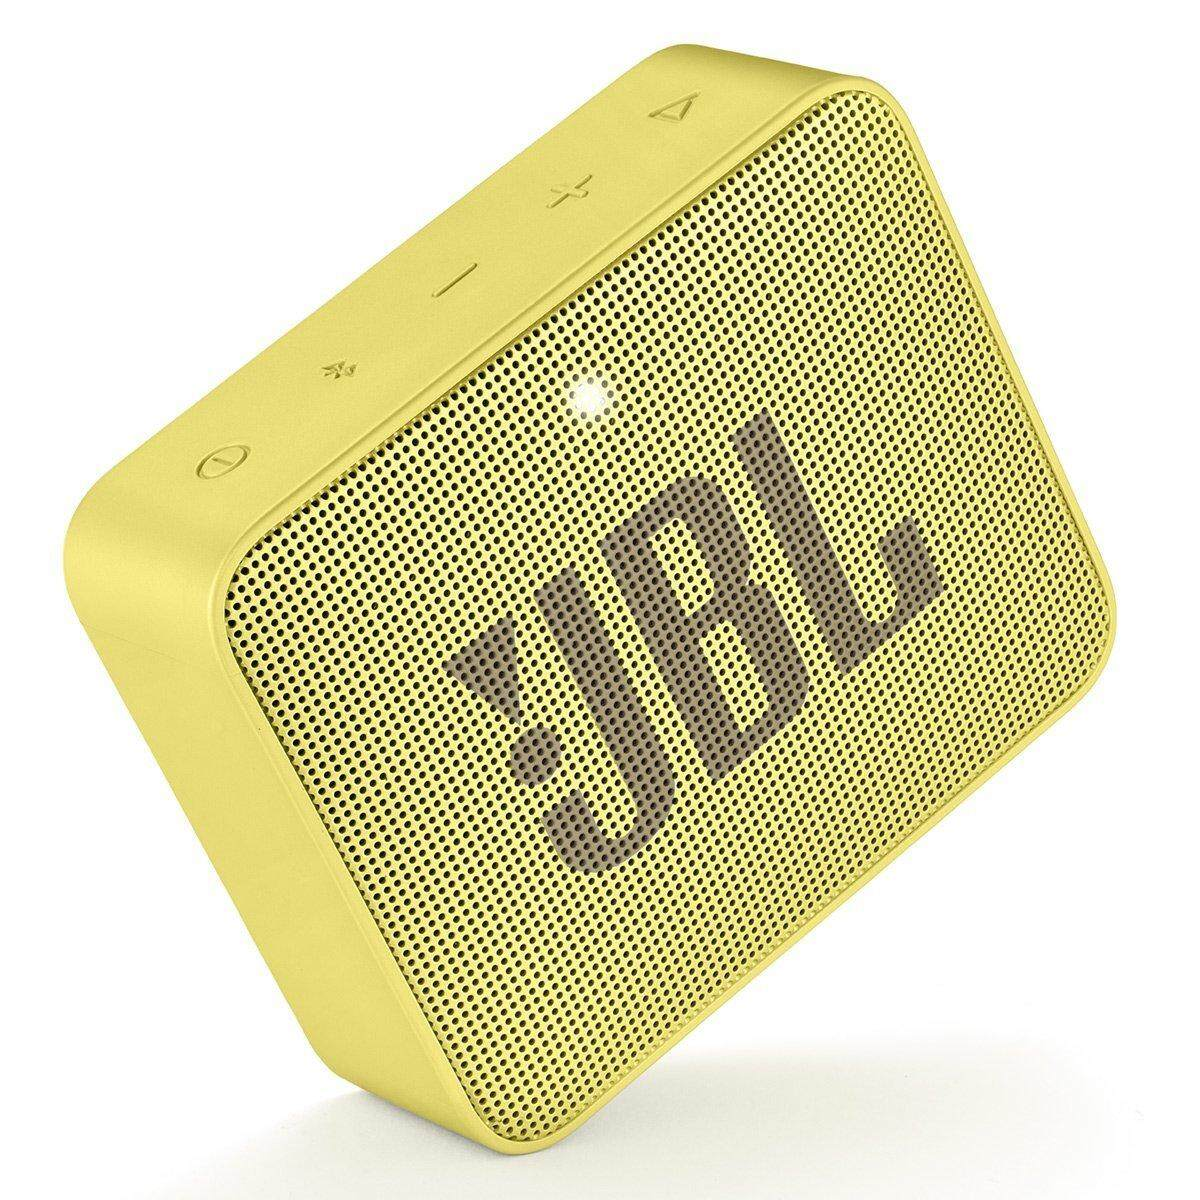 Features Jbl Go 2 Portable Speaker Tahan Air Bluetooth Intl Dan Leather Black Hitam 4